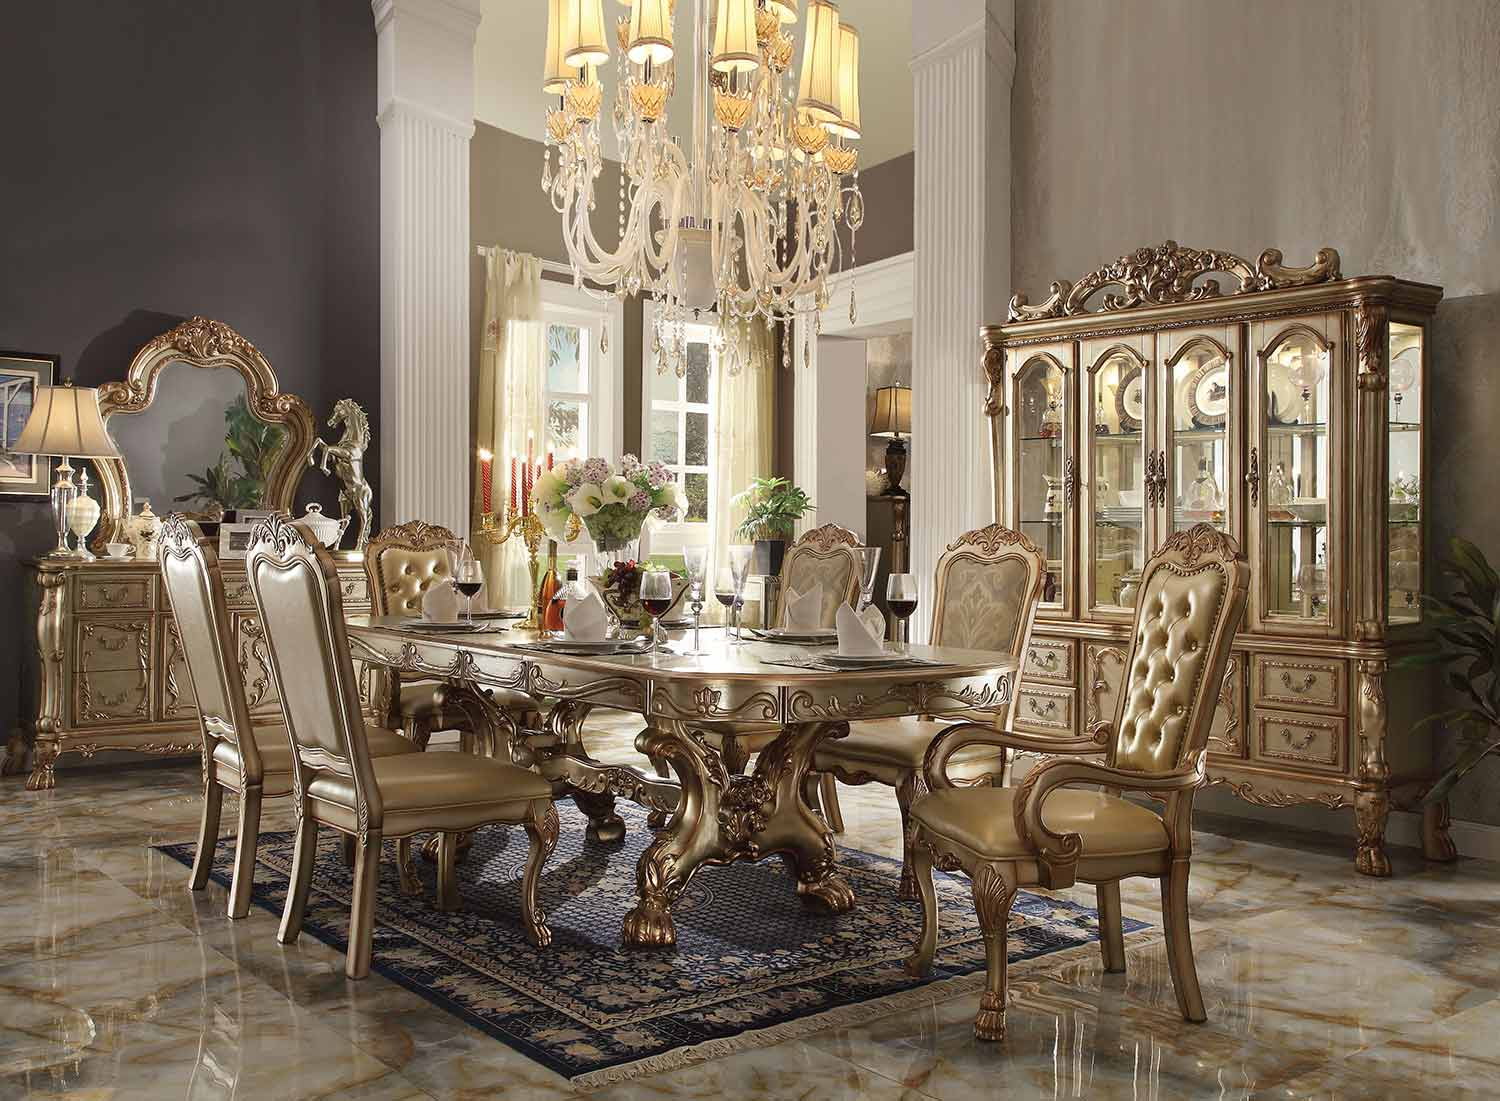 Acme Dresden Dining Set with Trestle Pedestal - Gold Patina/Bone